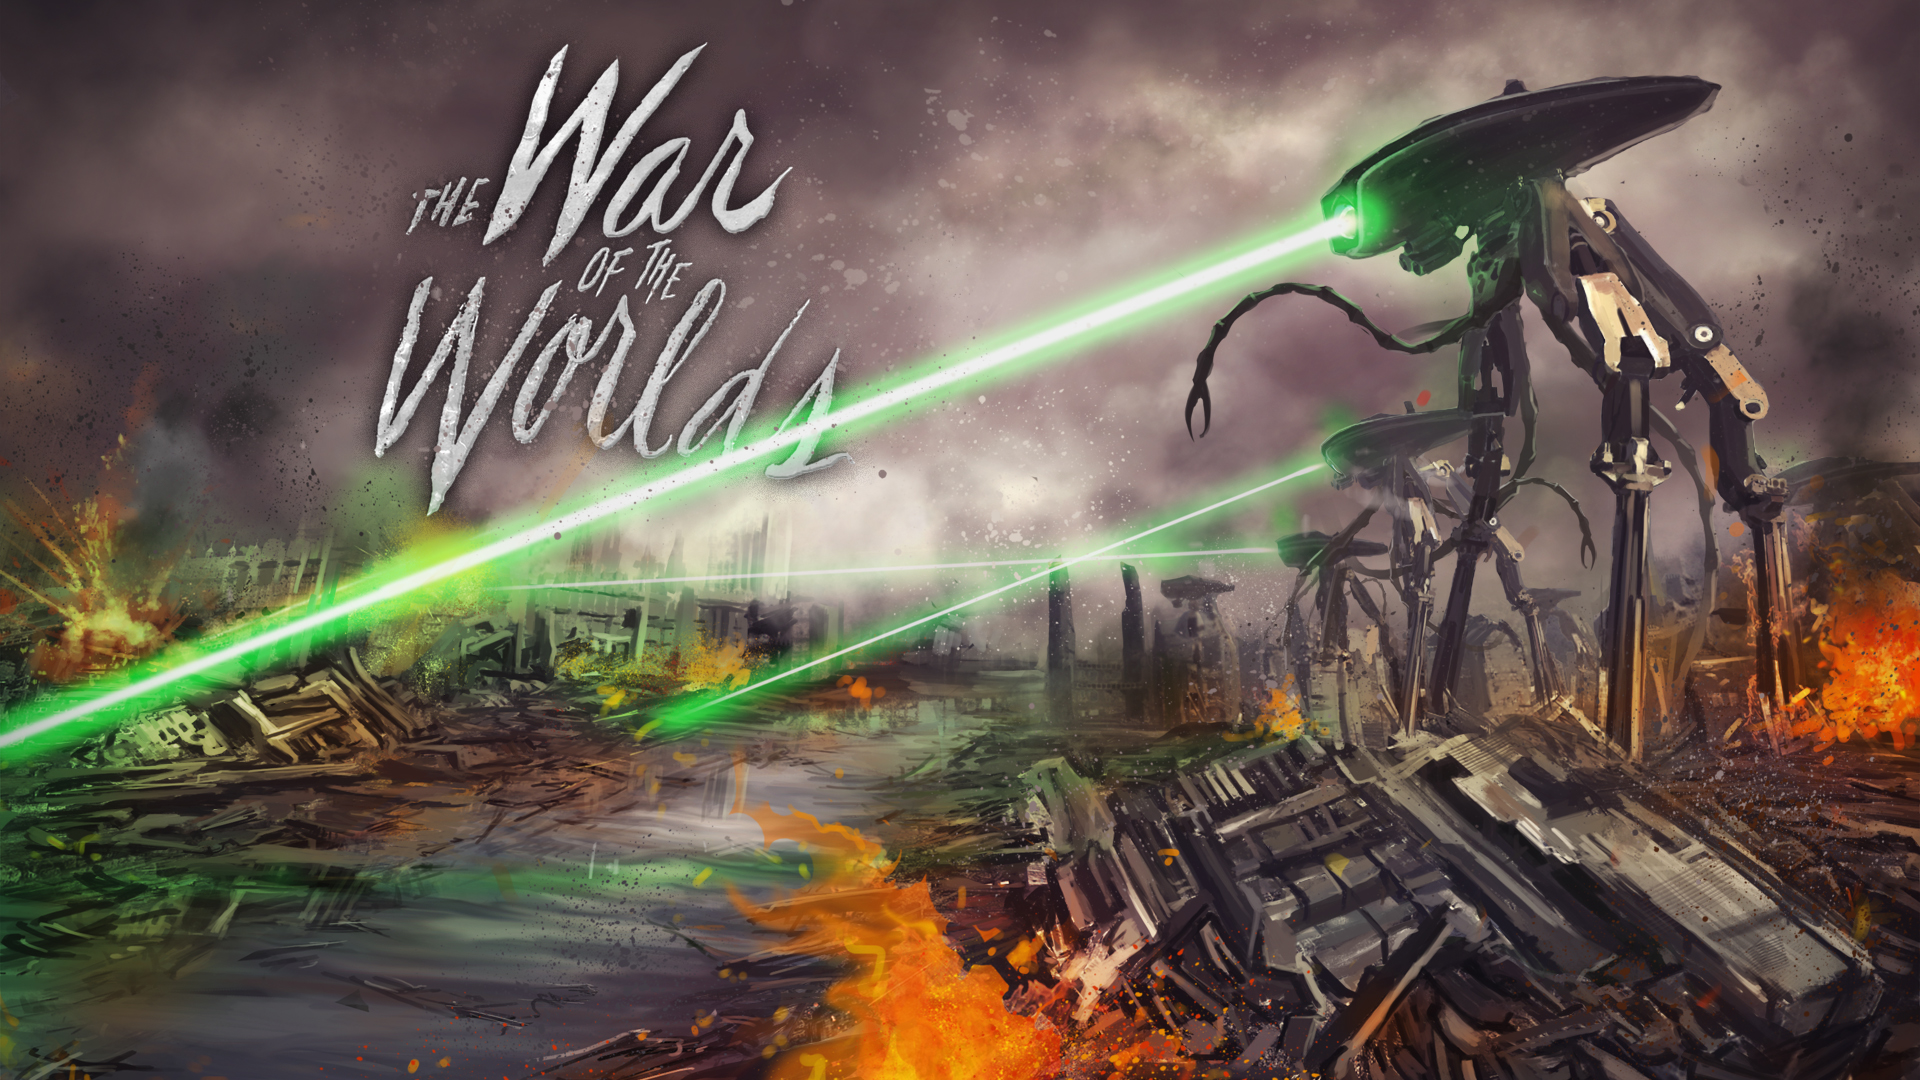 war of the worlds coursework